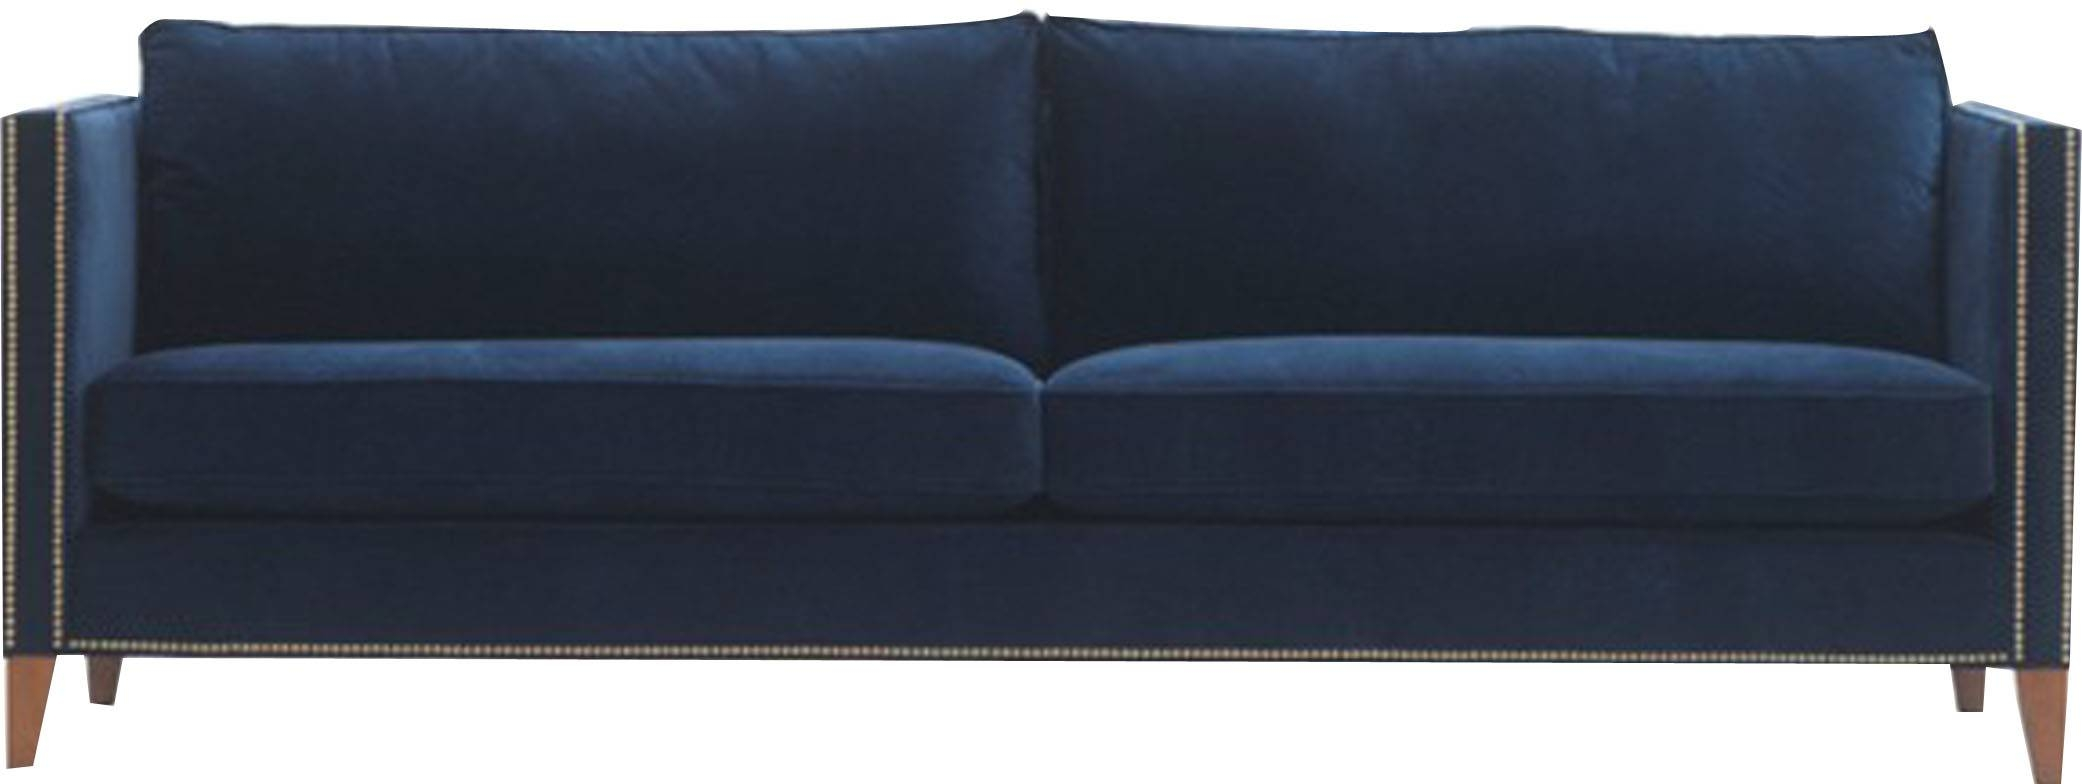 Luxury Blue Sofas 82 Living Room Sofa Ideas With Blue Sofas throughout Dark Blue Sofas (Image 11 of 30)